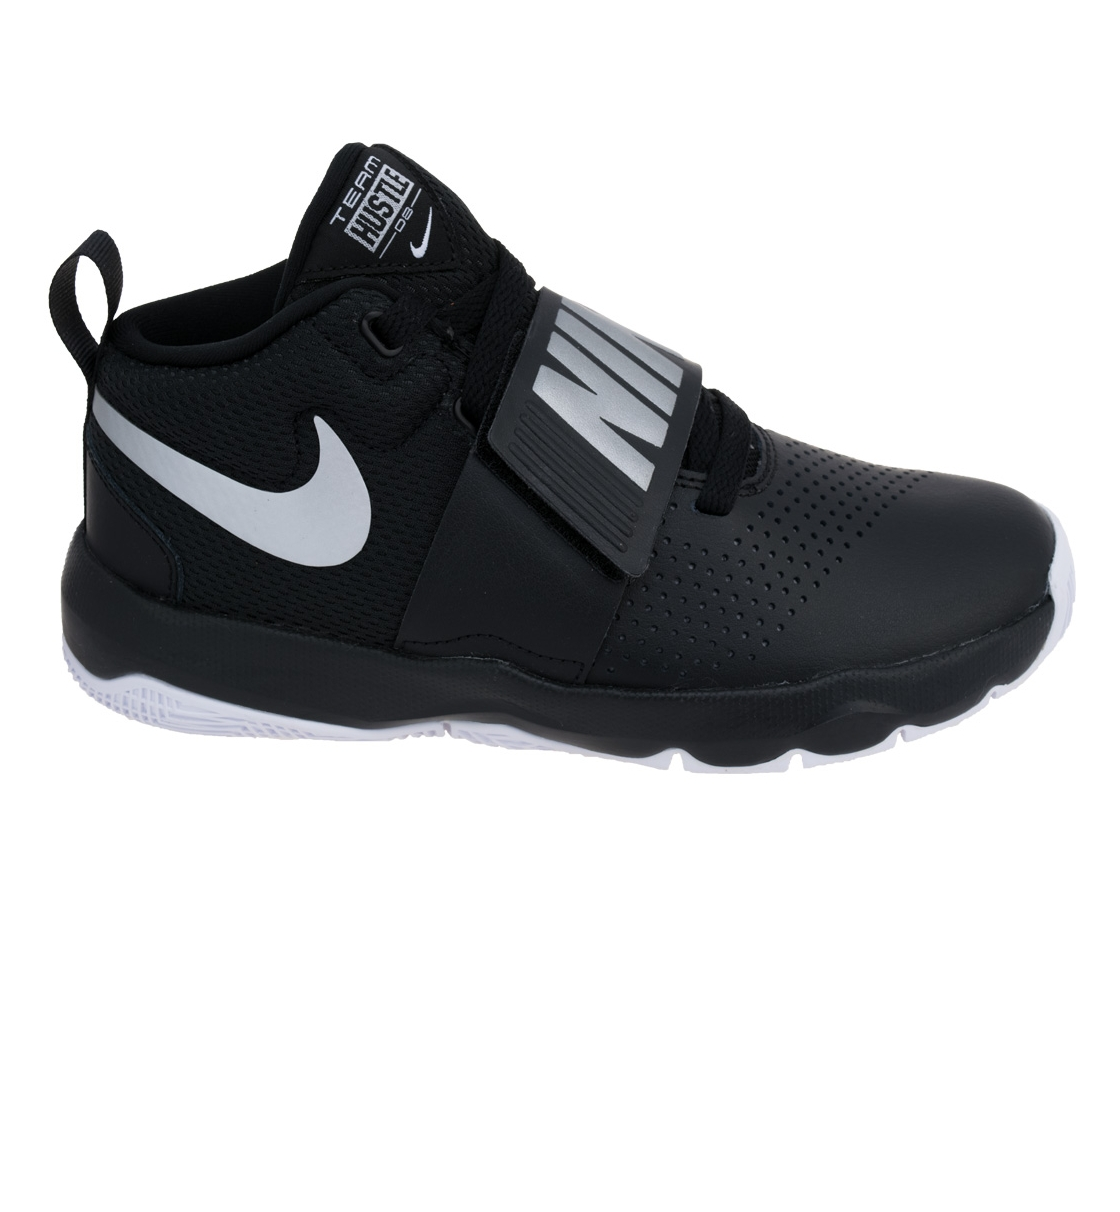 Nike Εφηβικό Παπούτσι Basket Nike Team Hustle D 8 (Gs) 881941